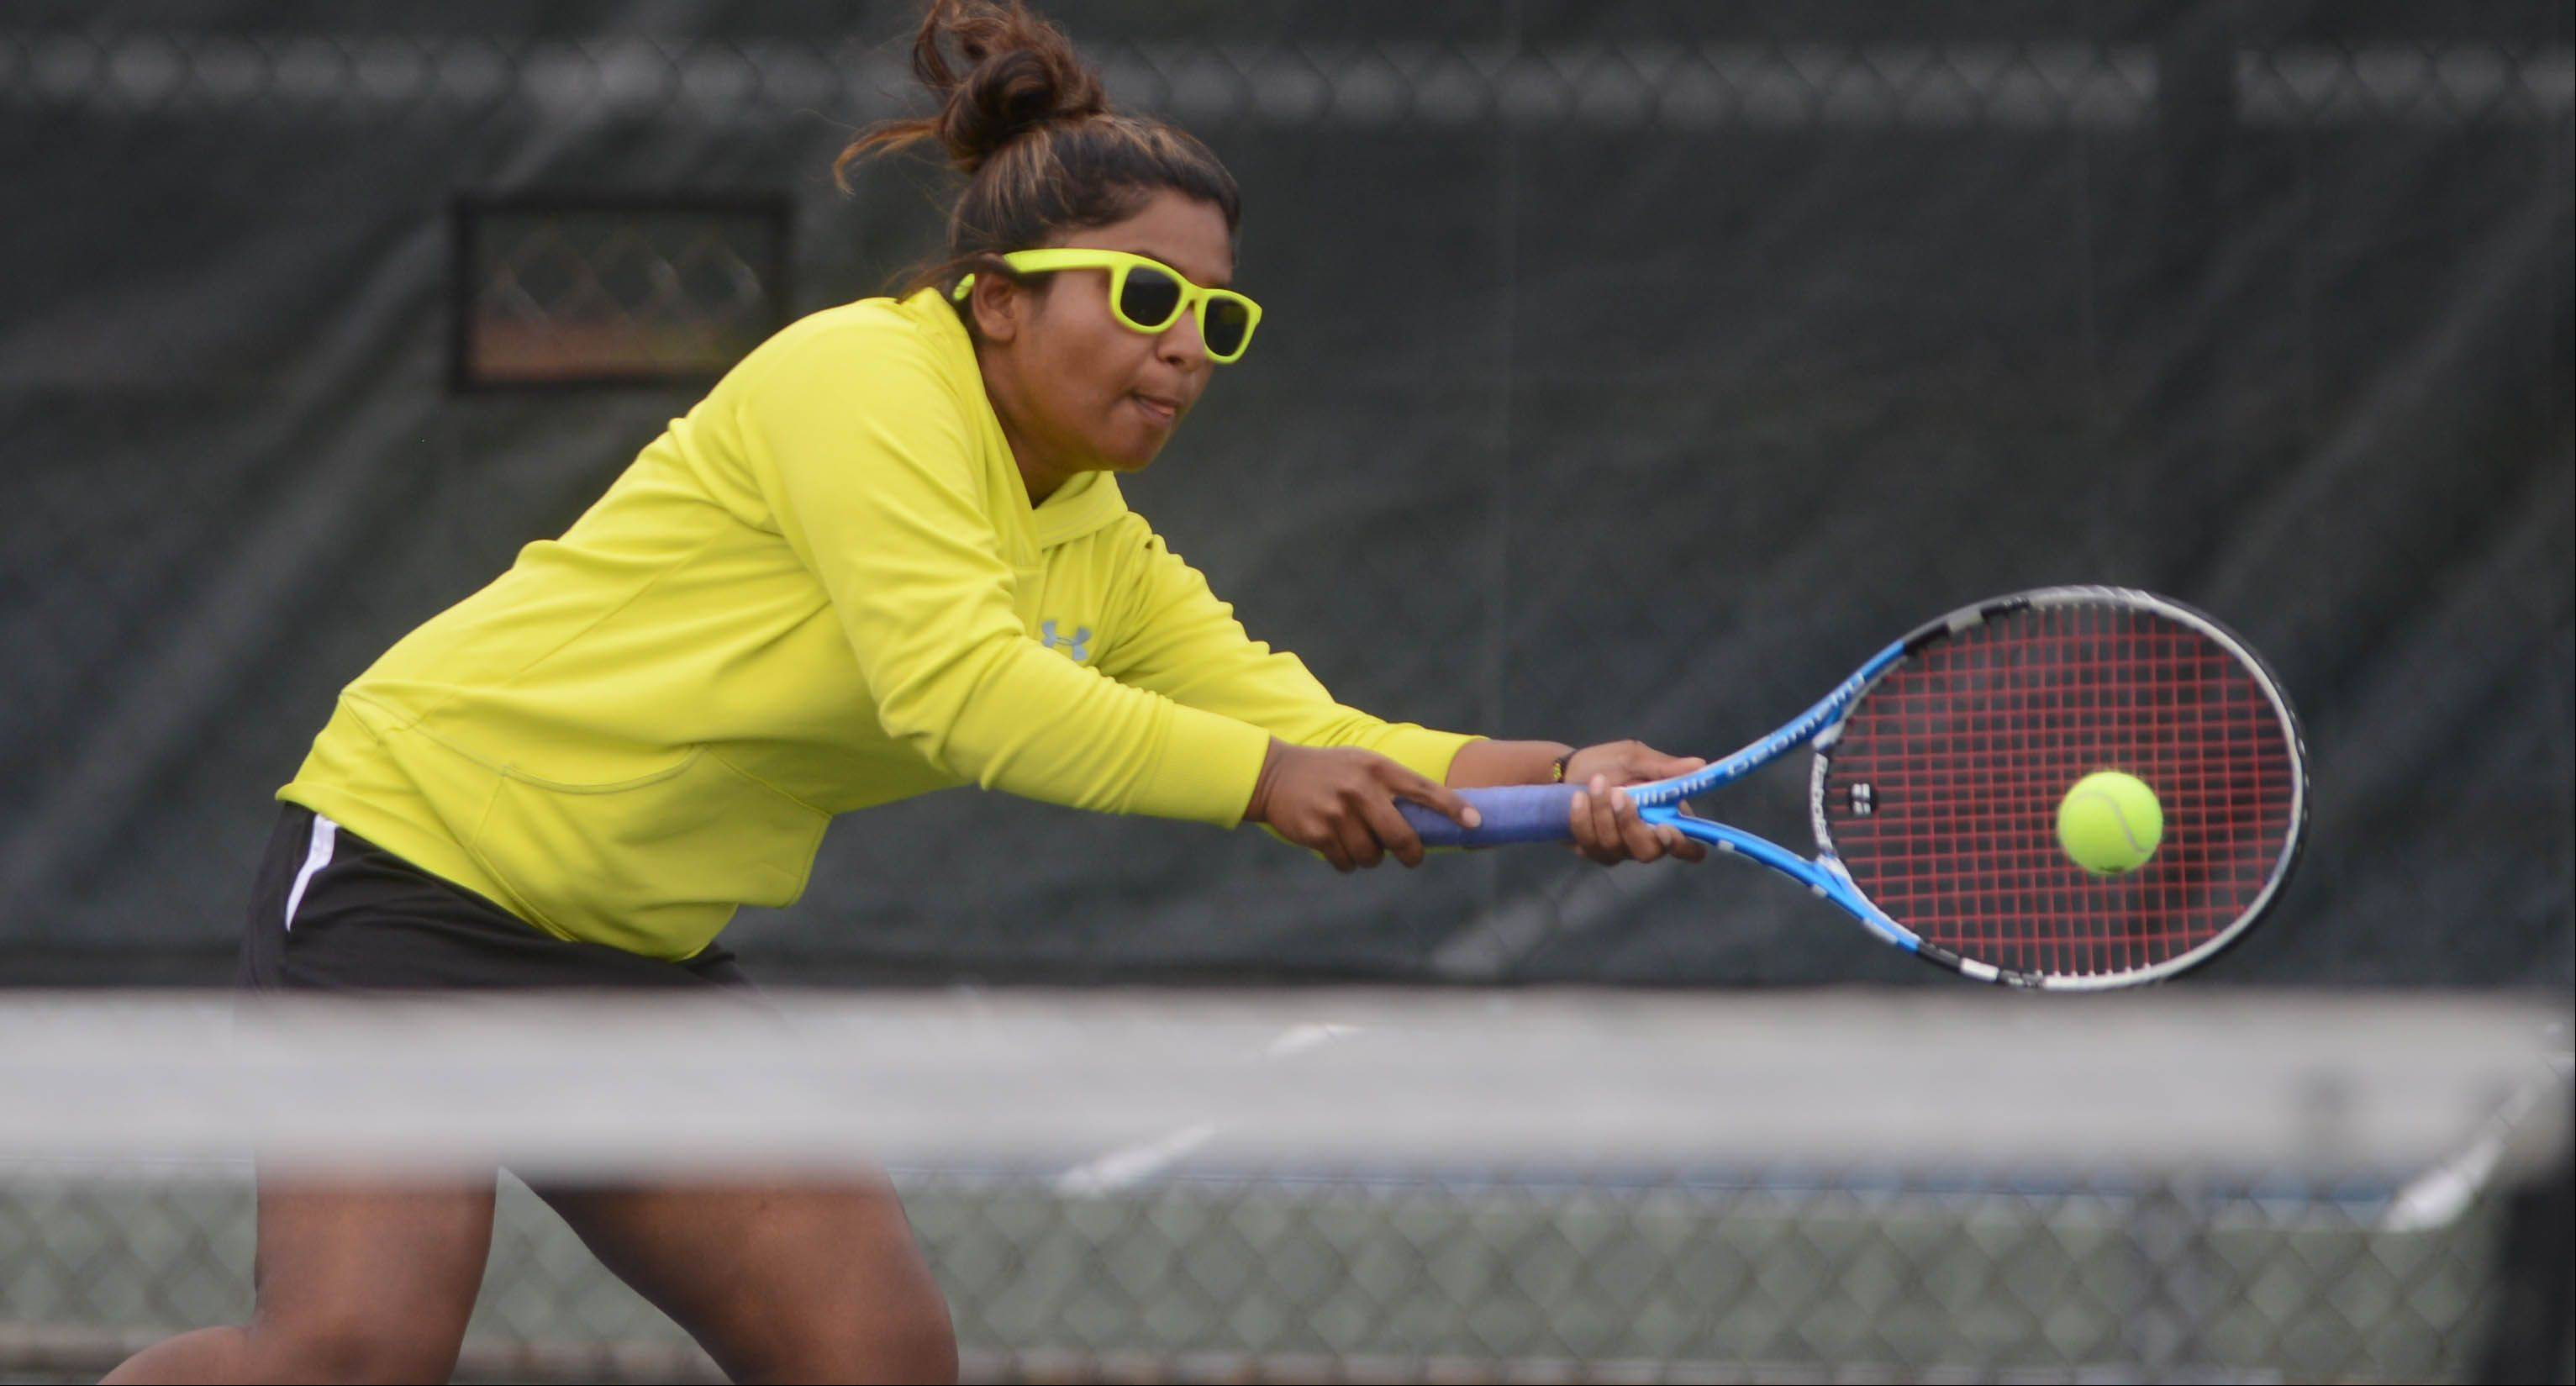 Nikki Beesetti of Metea Valley reaches for the ball during the Metea Valley at Waubonsie Valley girls tennis match Tuesday.